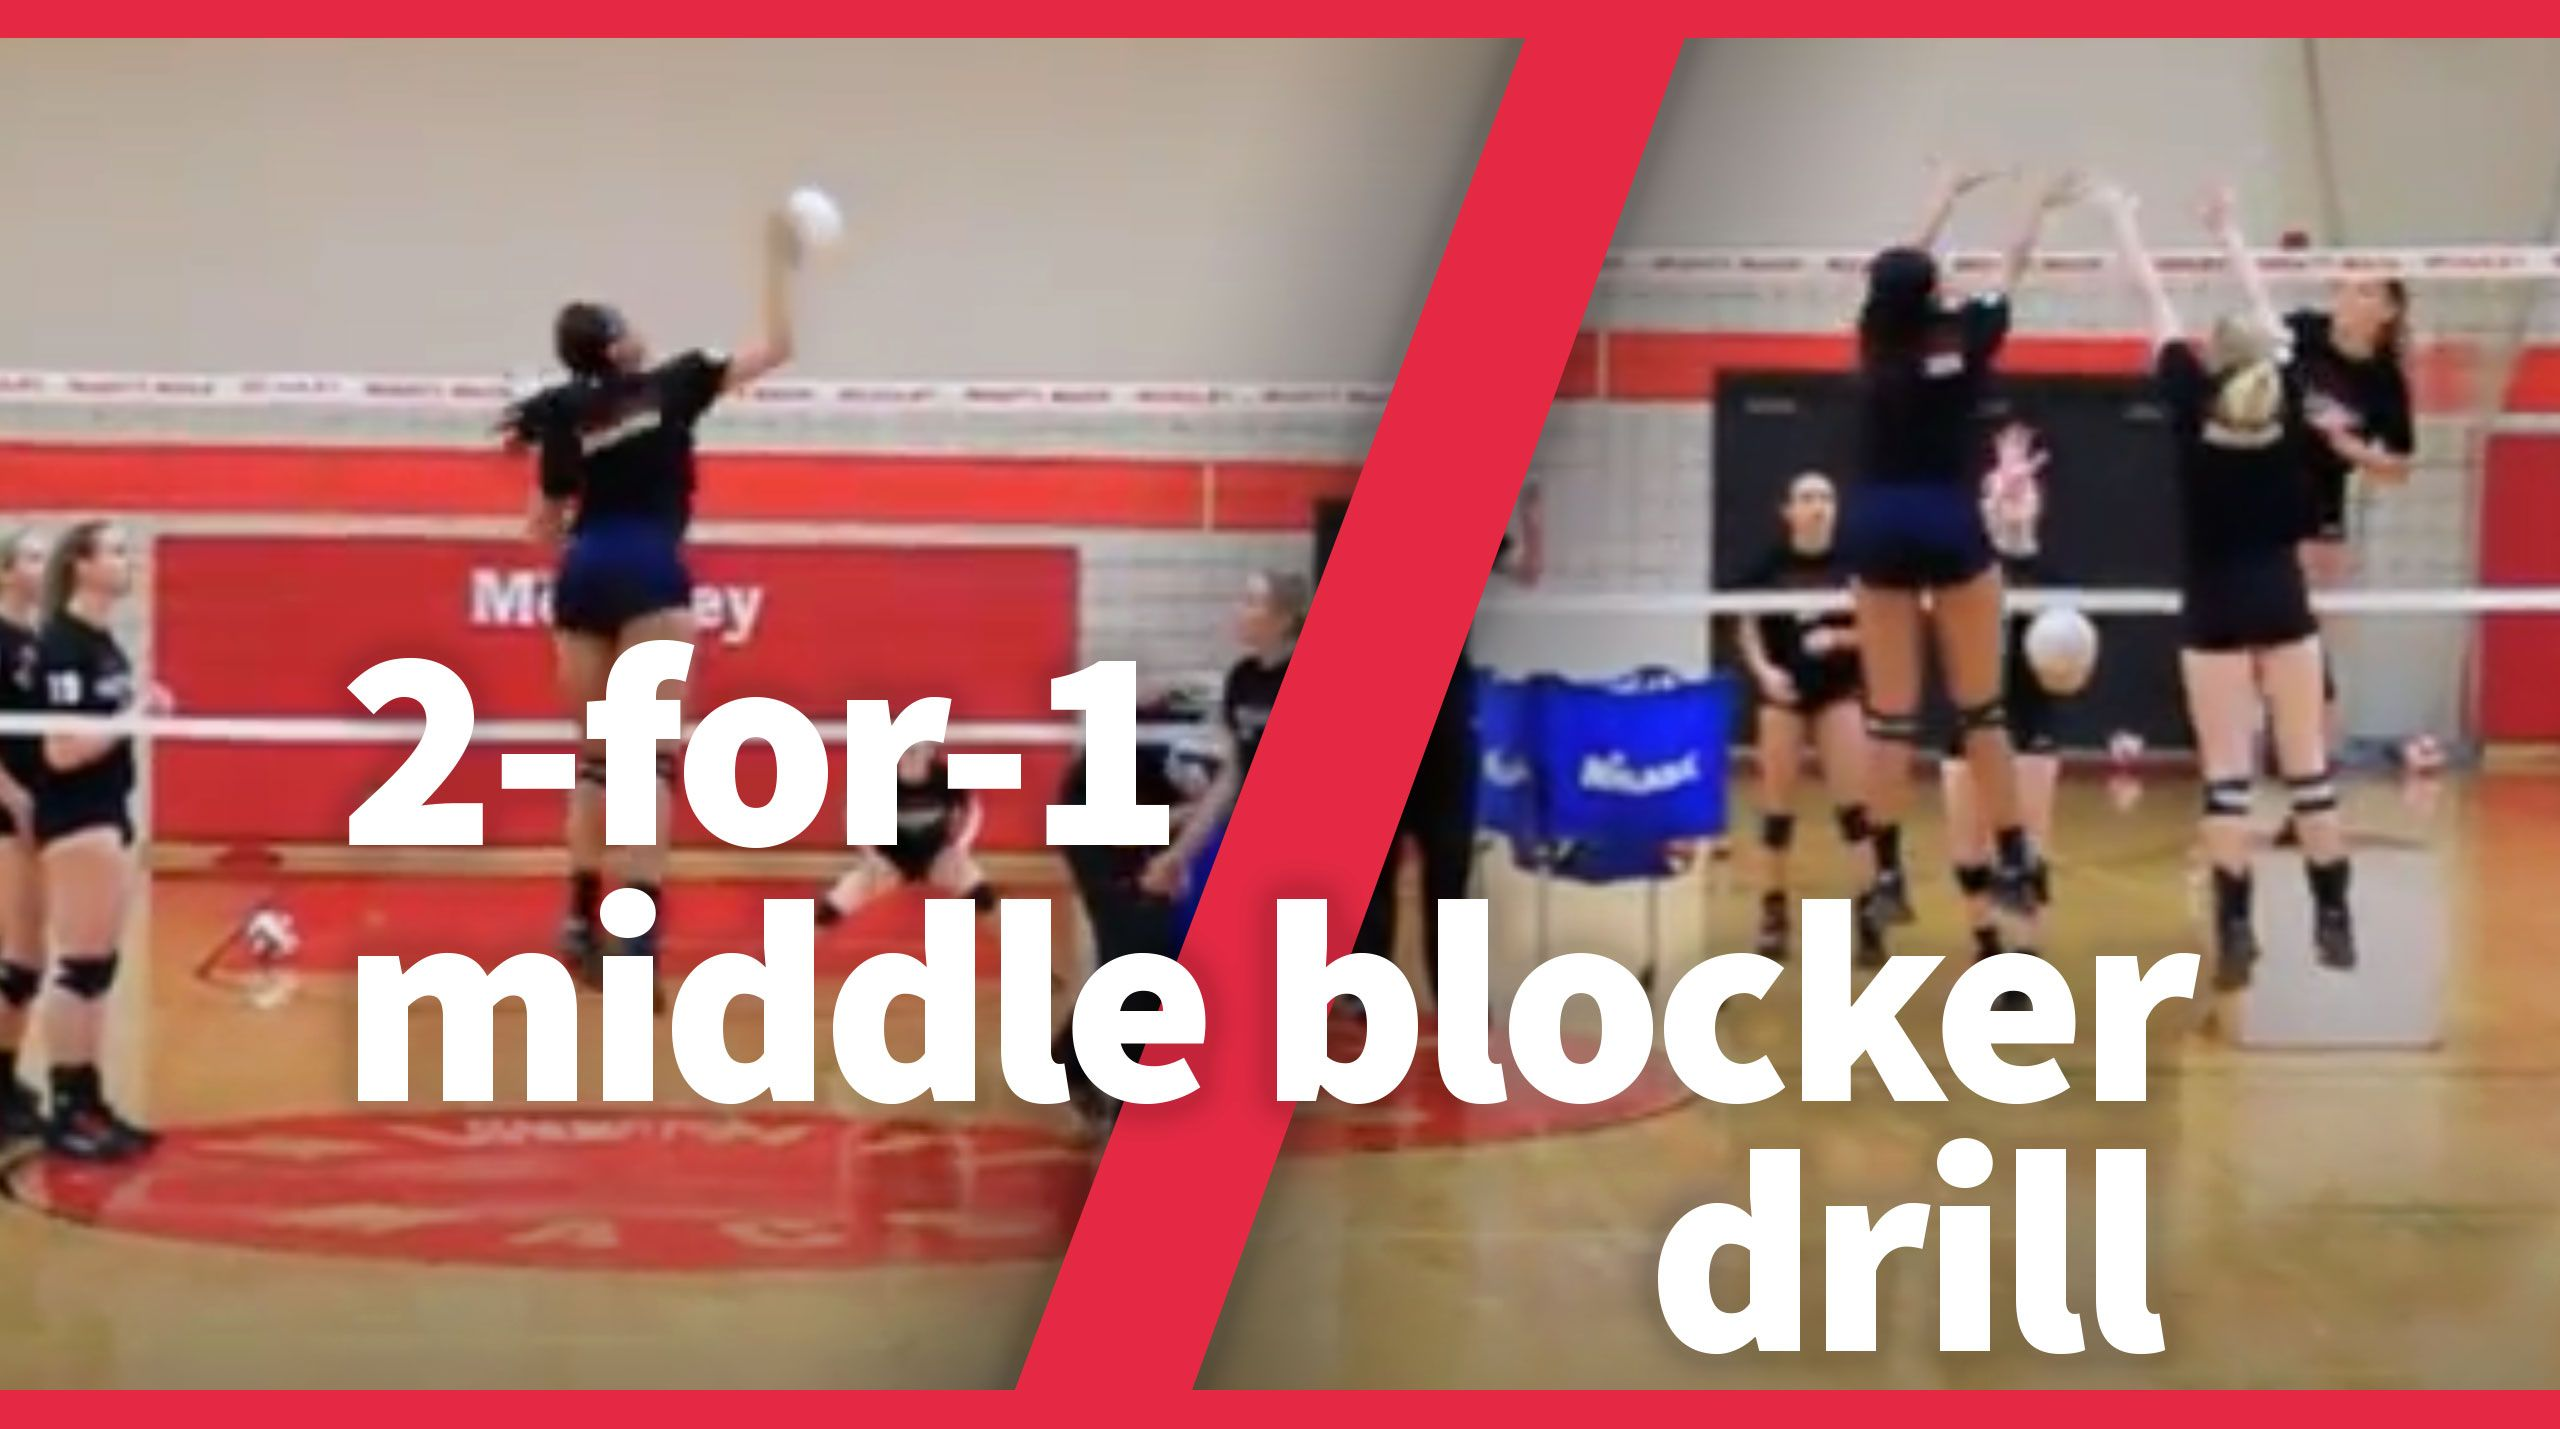 Transition Middle Blocker Drill Volleyball Workouts Volleyball Training Coaching Volleyball